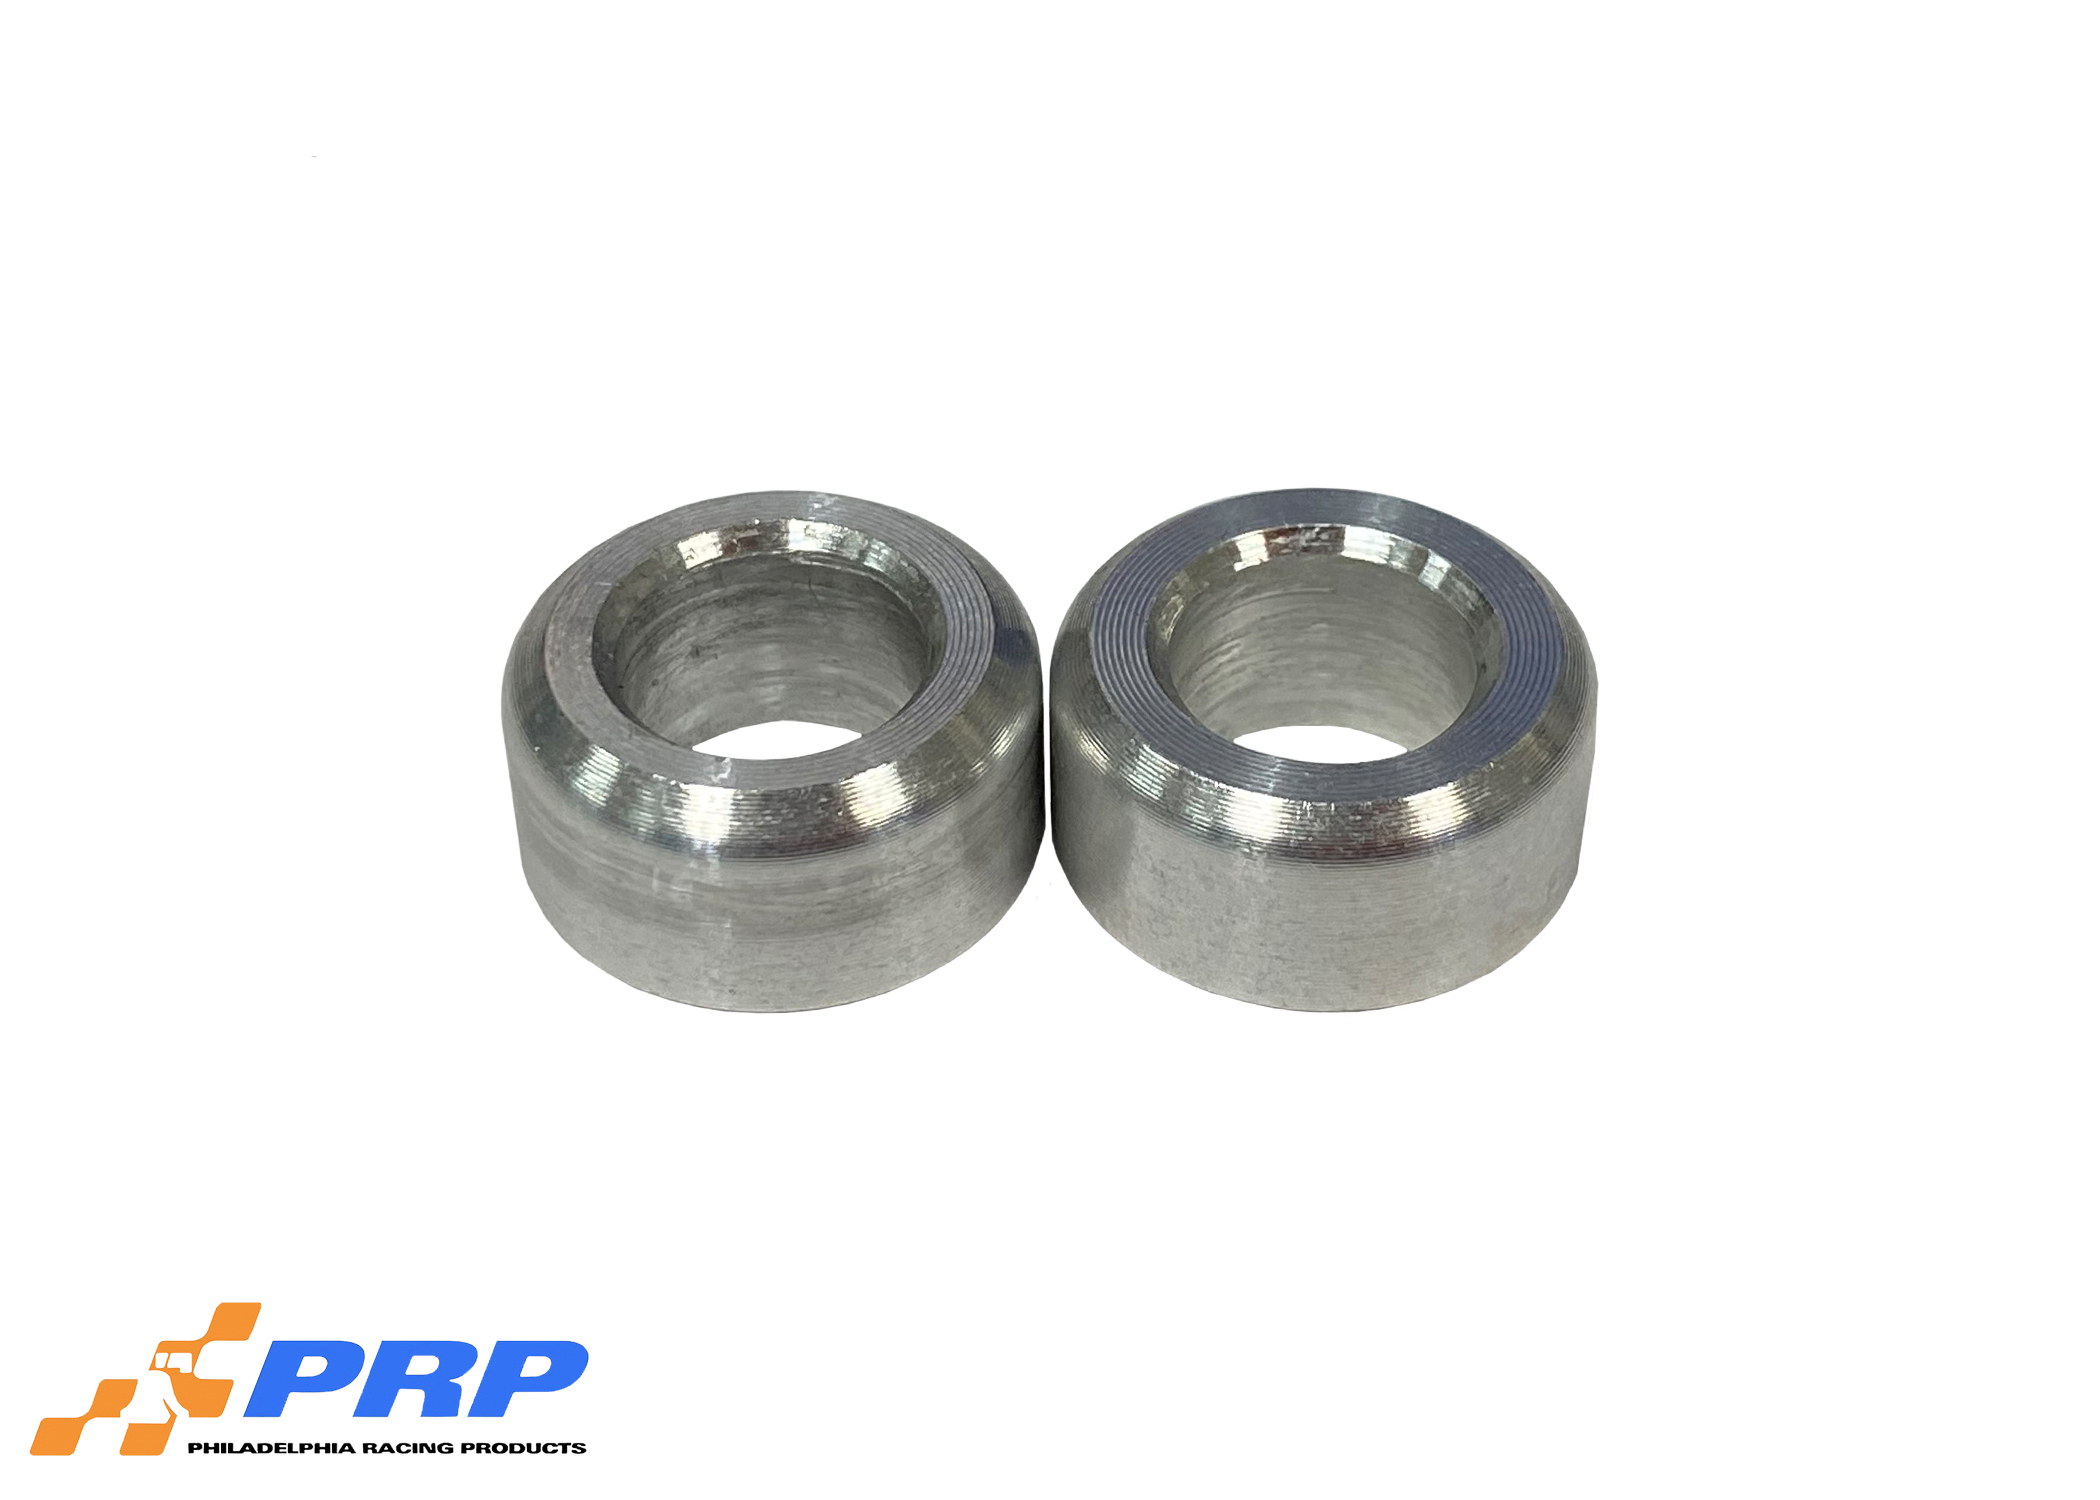 Two Clear Dominator Spacers made by PRP Racing Products